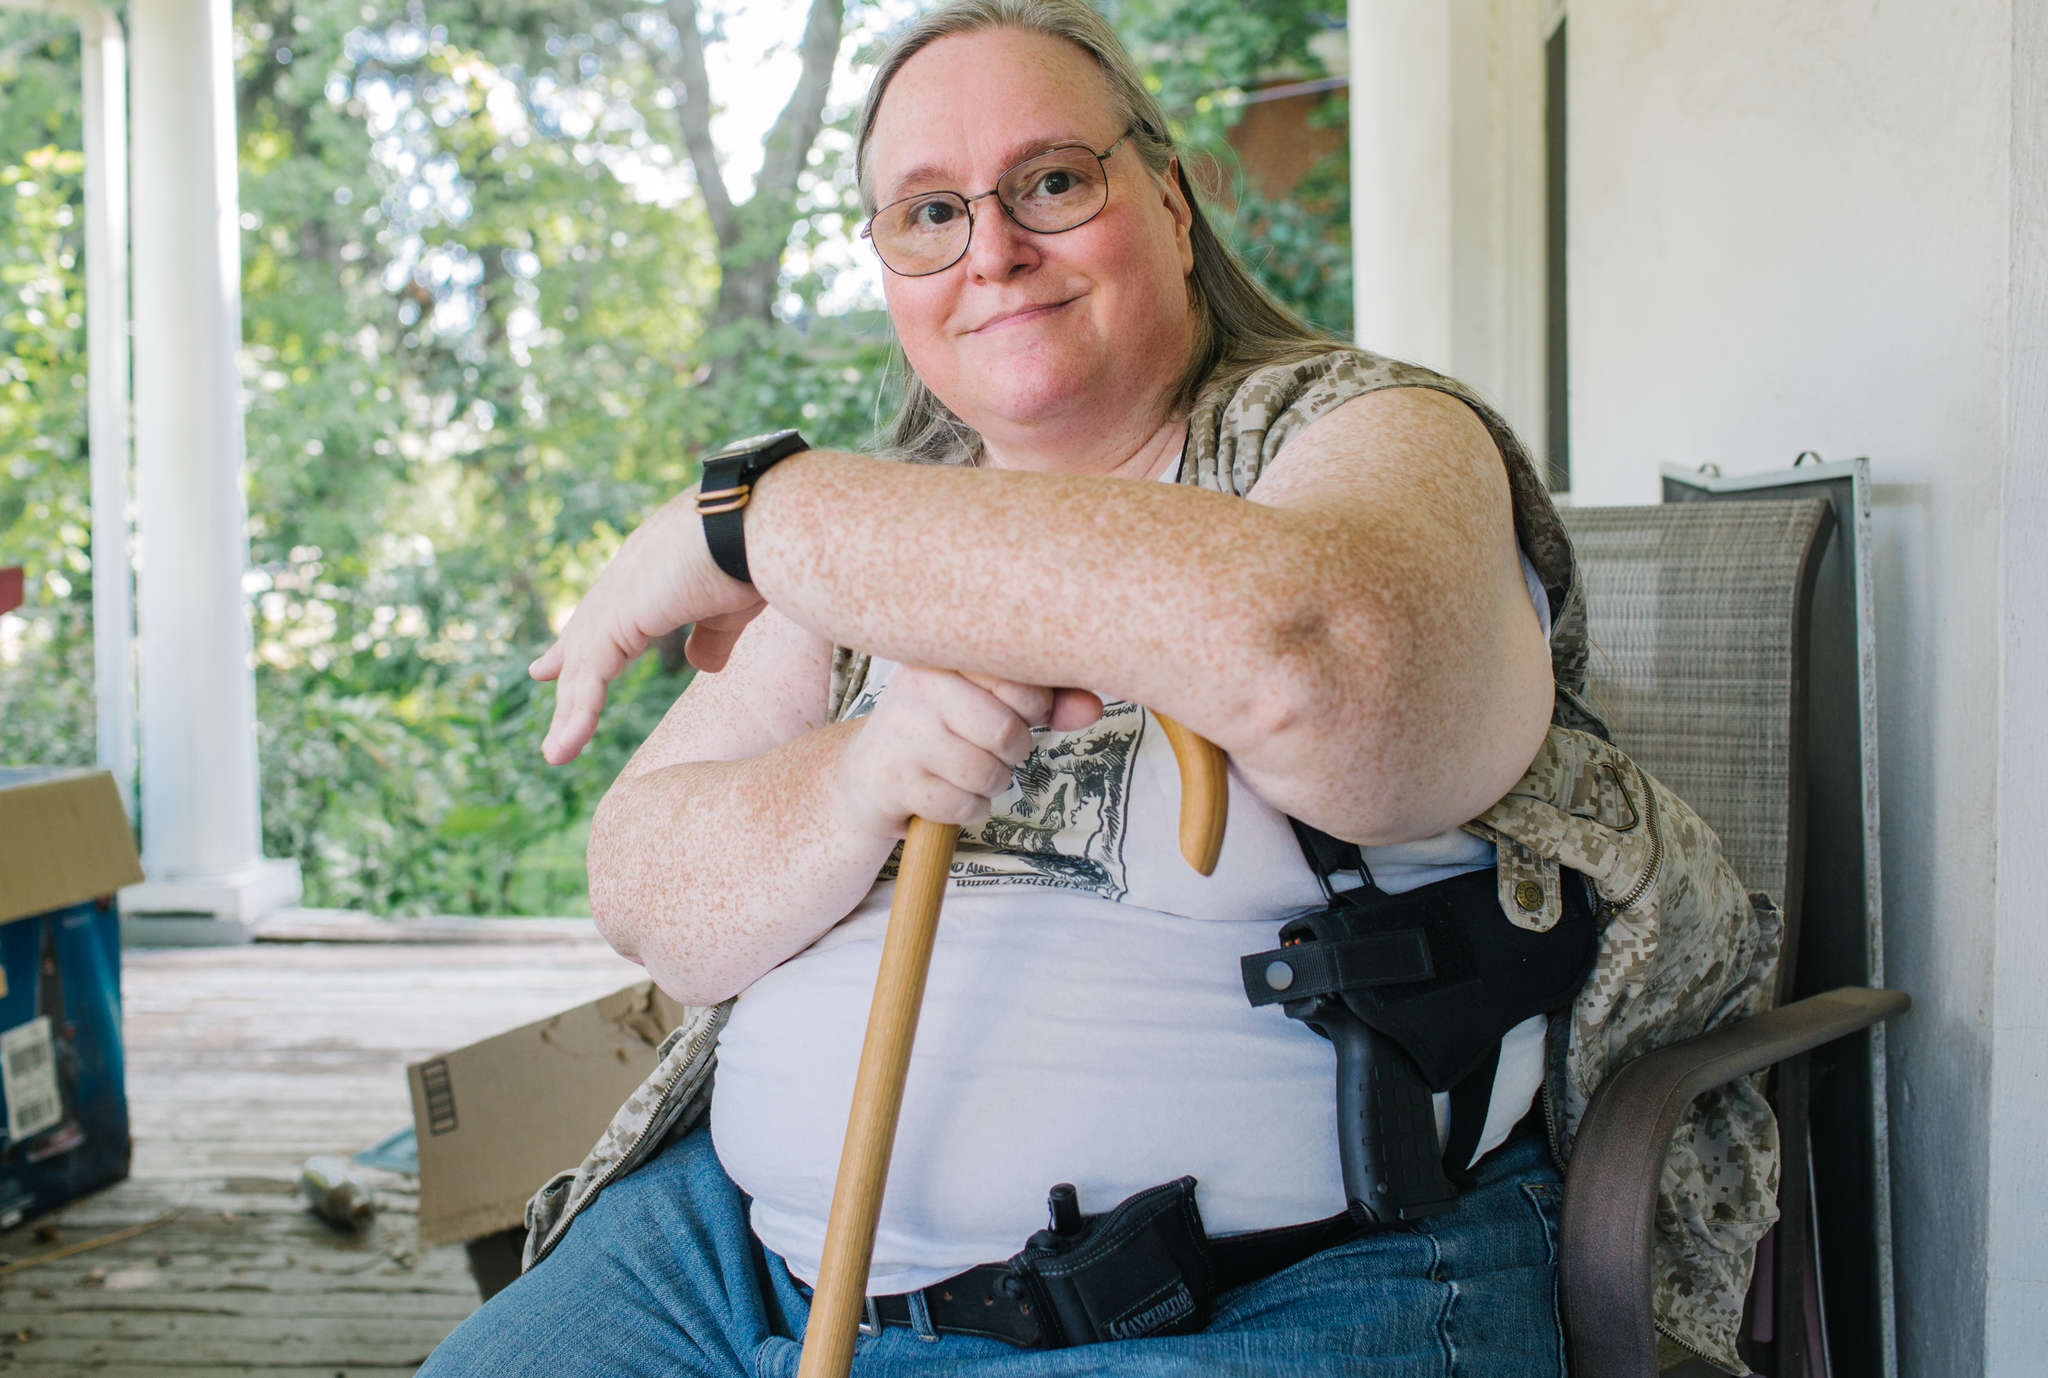 Gwen Patton , who started the Delaware Valley Pink Pistols chapter in 2001: Members are educated in how to shoot, gun advocacy and obtaining permits. MICHELLE GUSTAFSON / For the Daily News